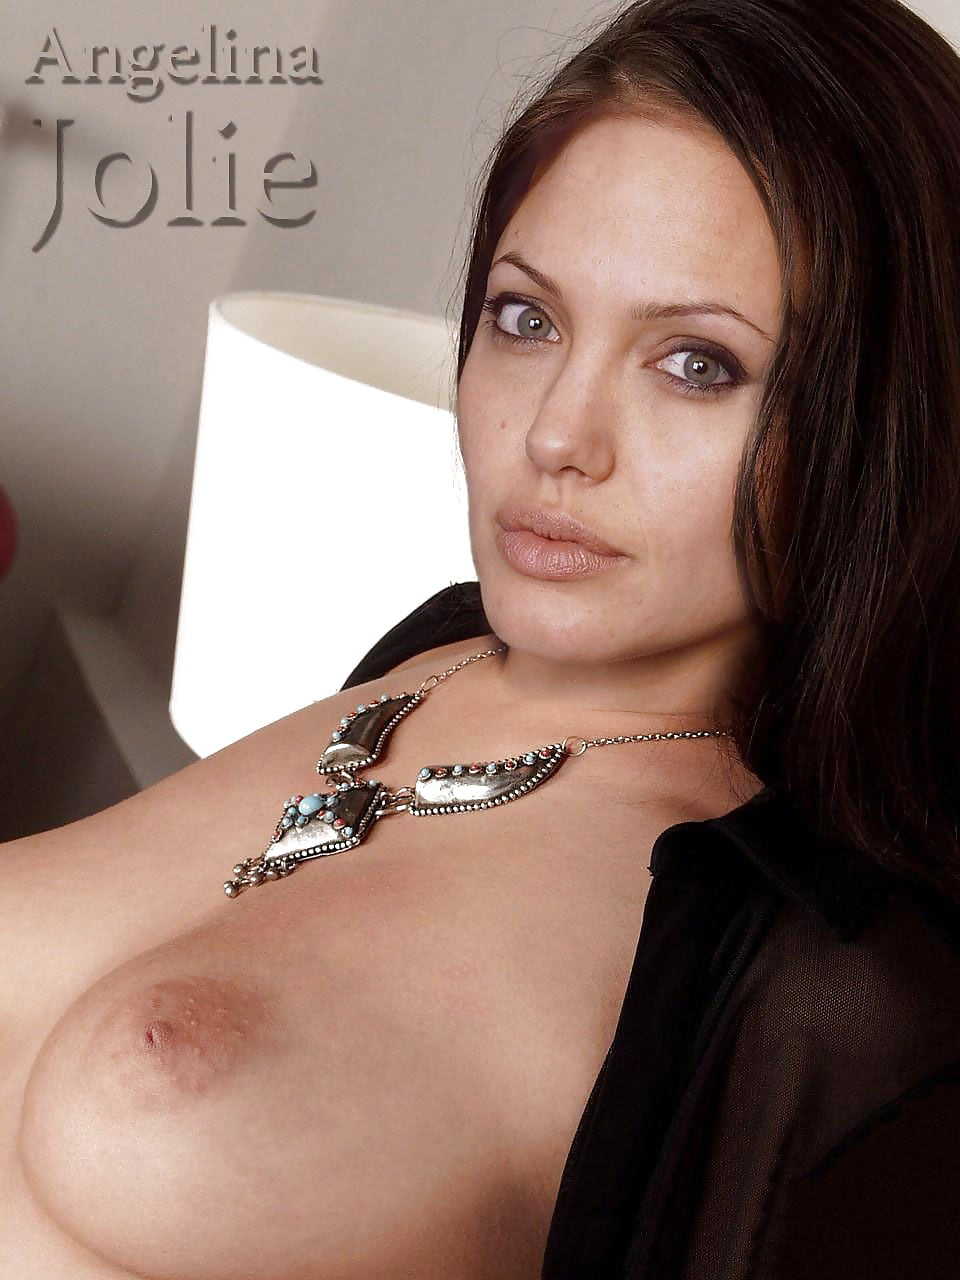 angelina-jolie-naked-vagina-big-cock-first-time-sex-picture